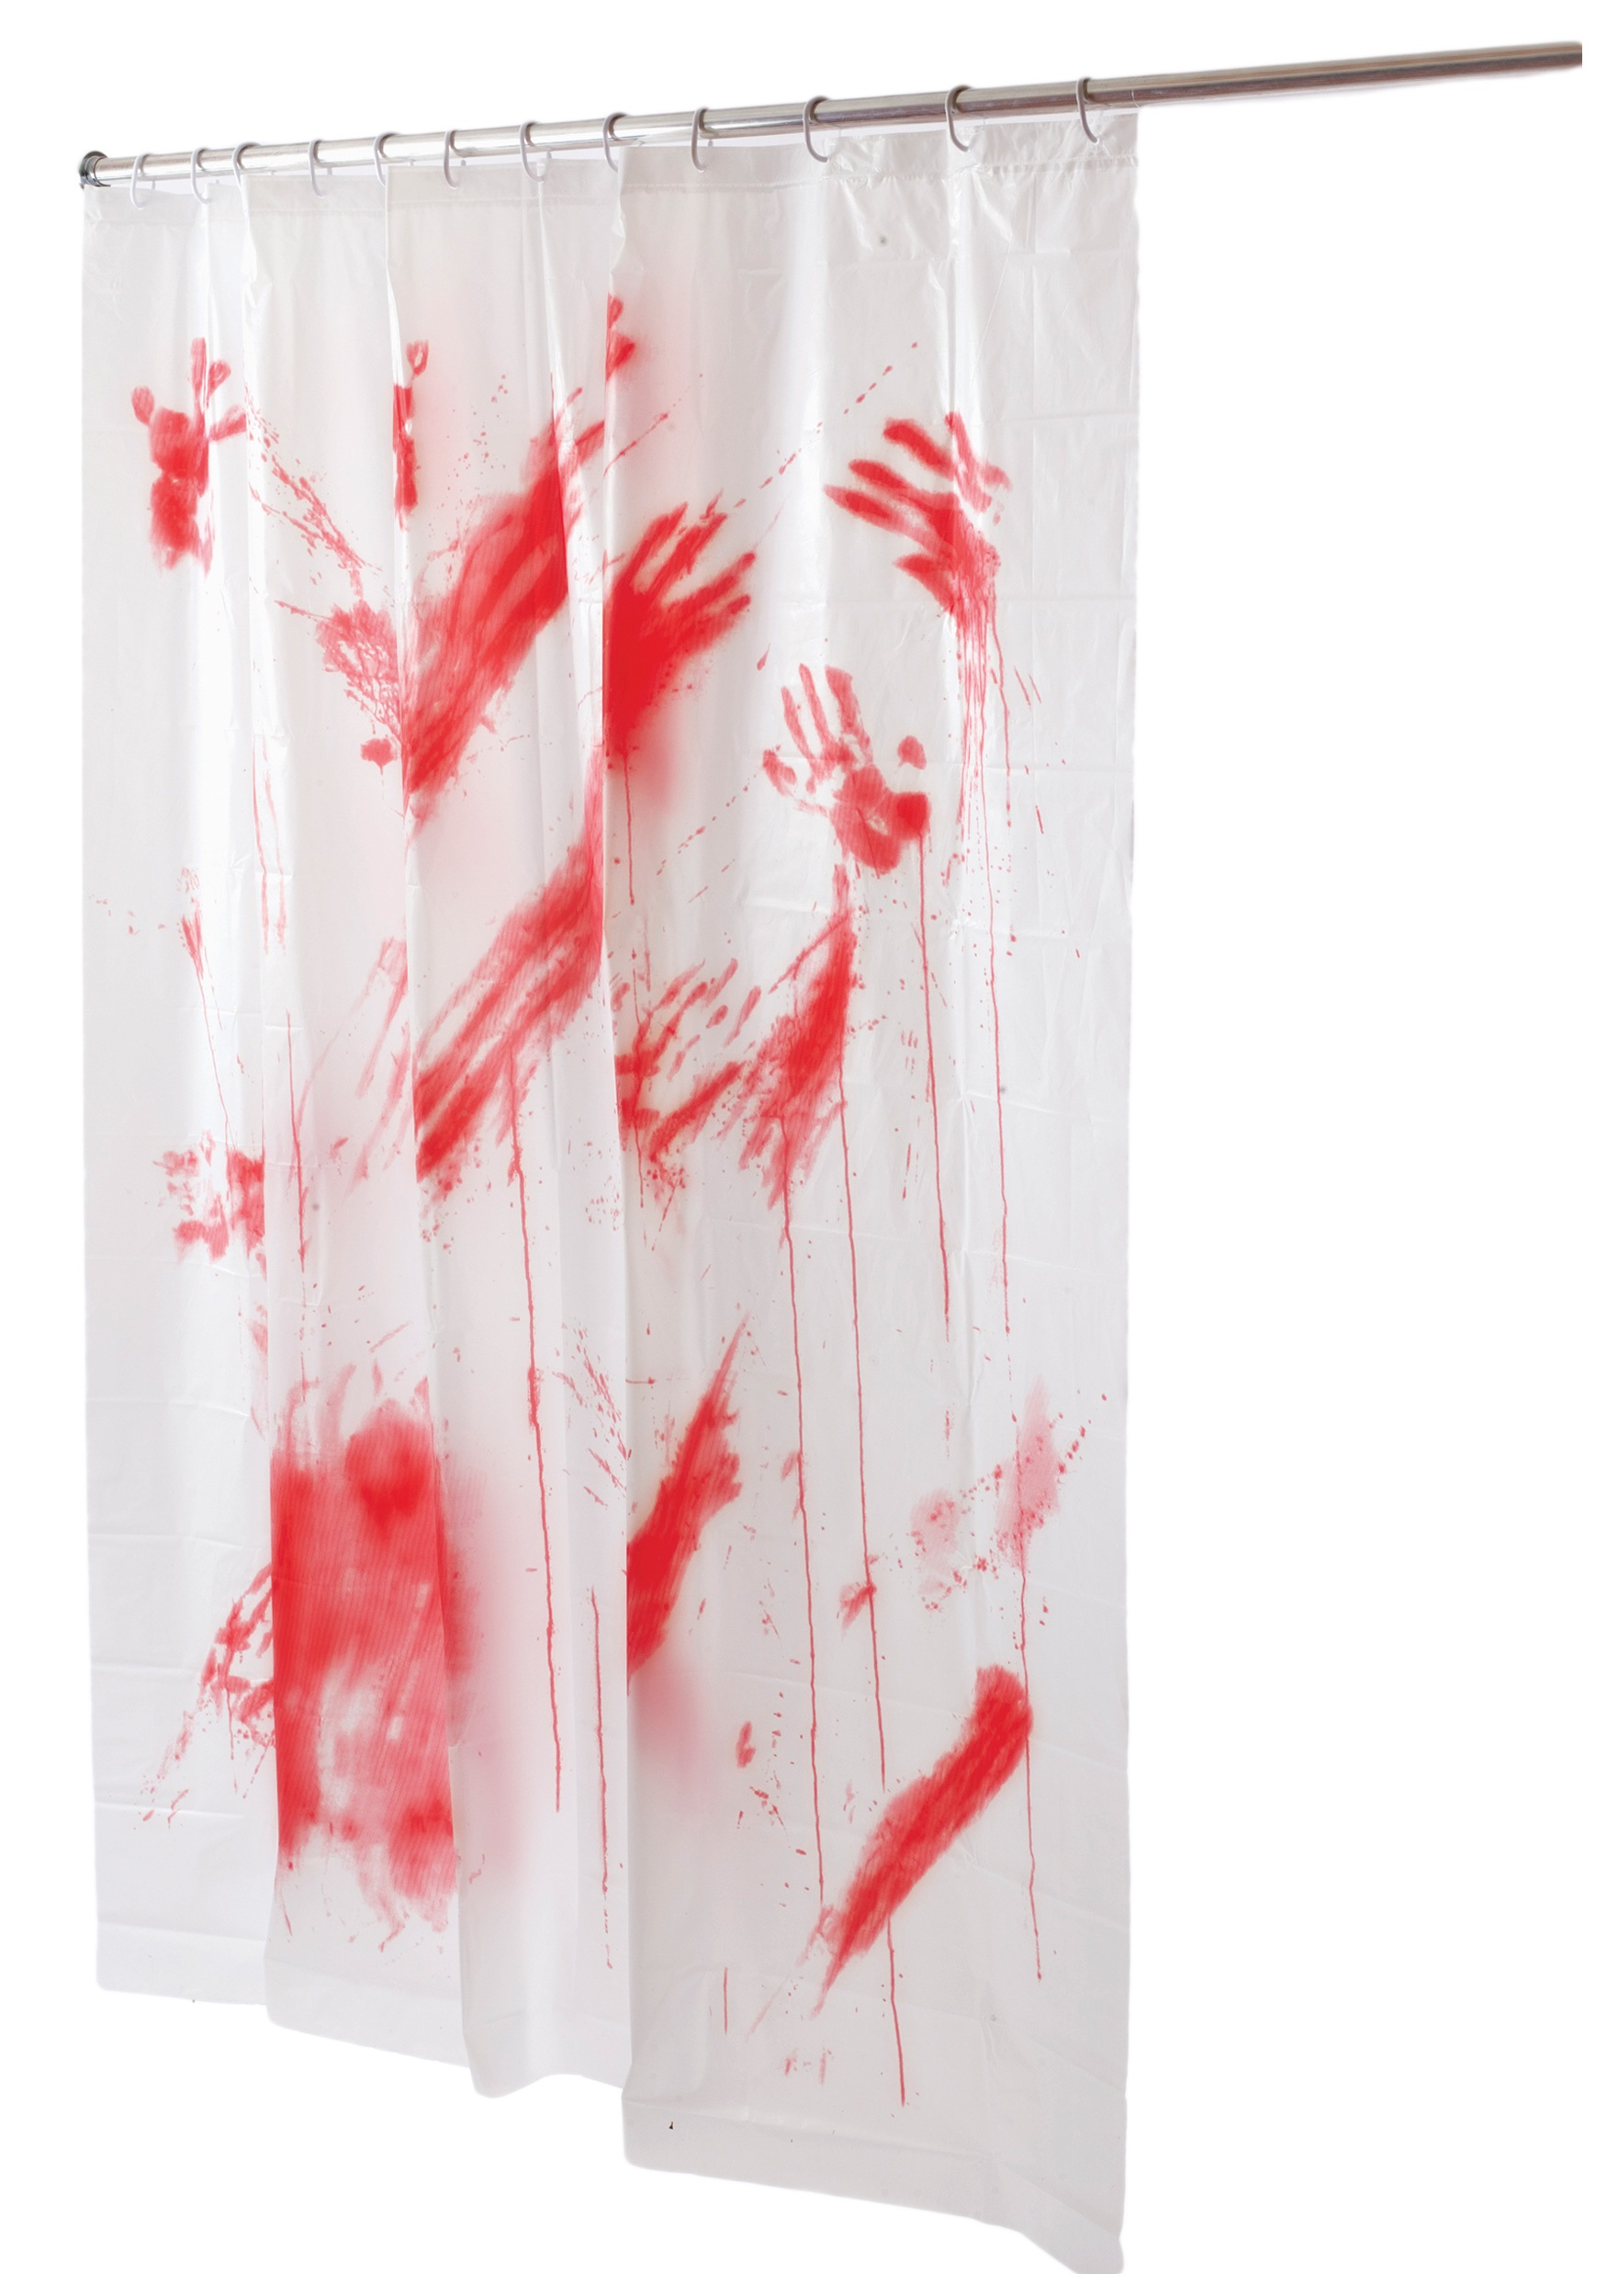 Bloody shower curtain for Psycho shower curtain and bath mat